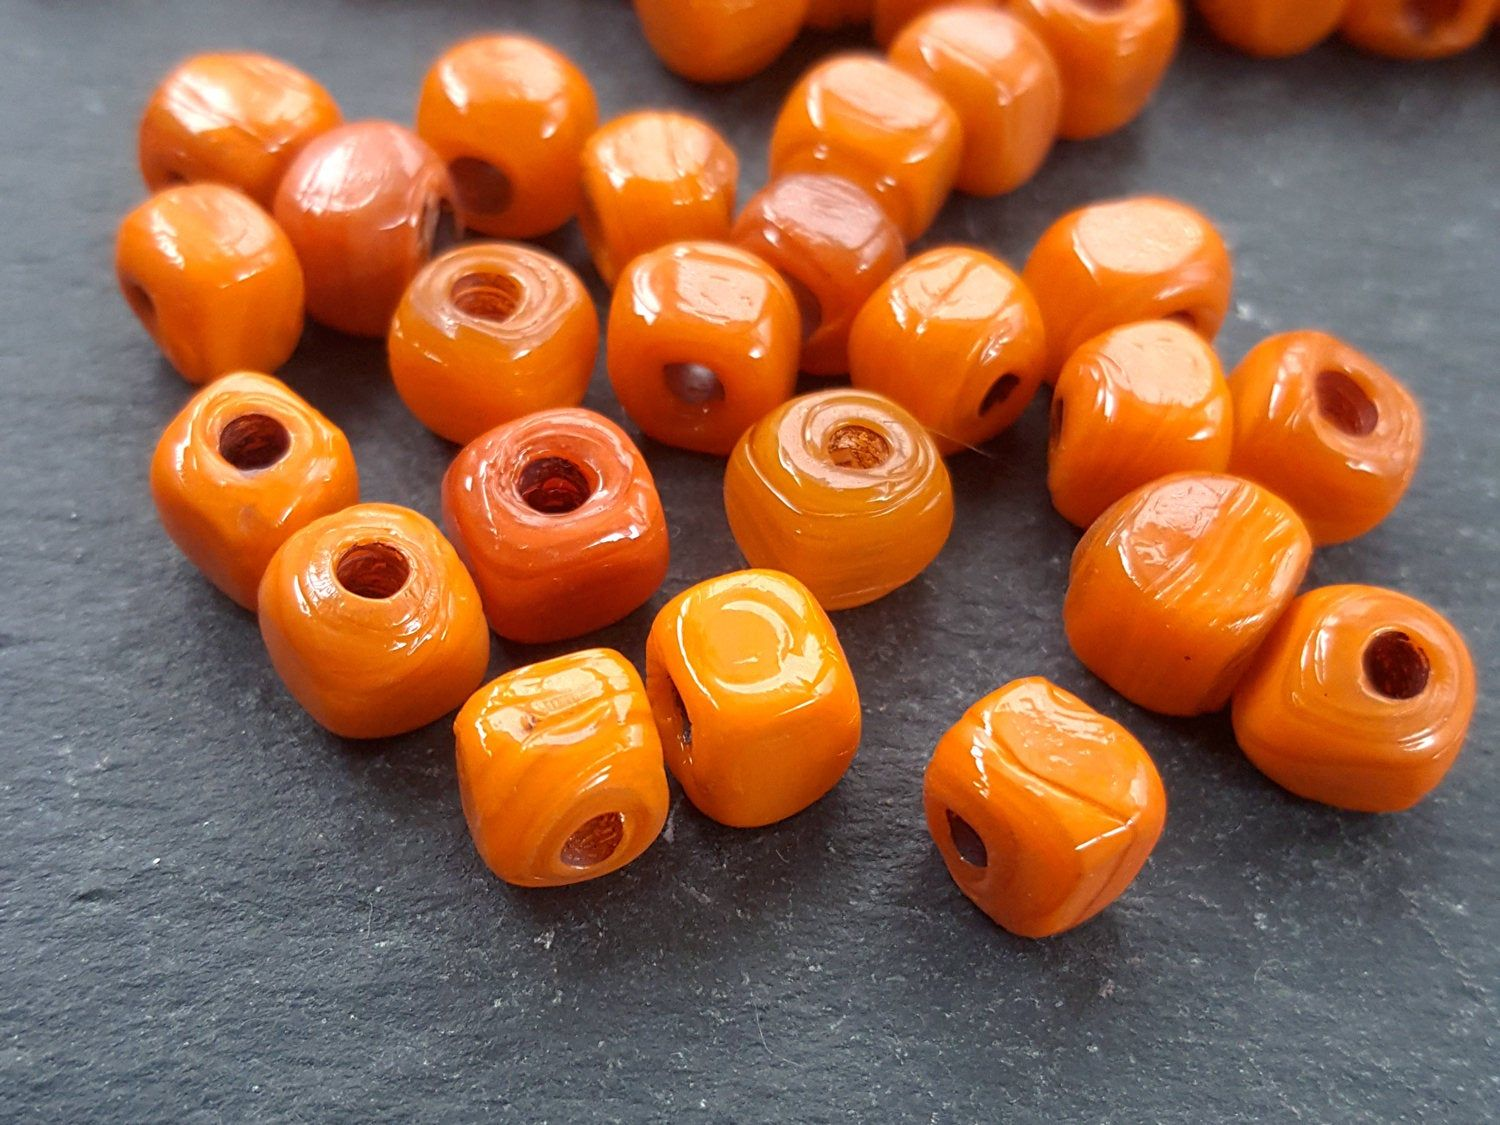 Arts /& Crafts 3 /& 5pc Packs of Large Beads 10-20mm for Jewellery Making Sewing